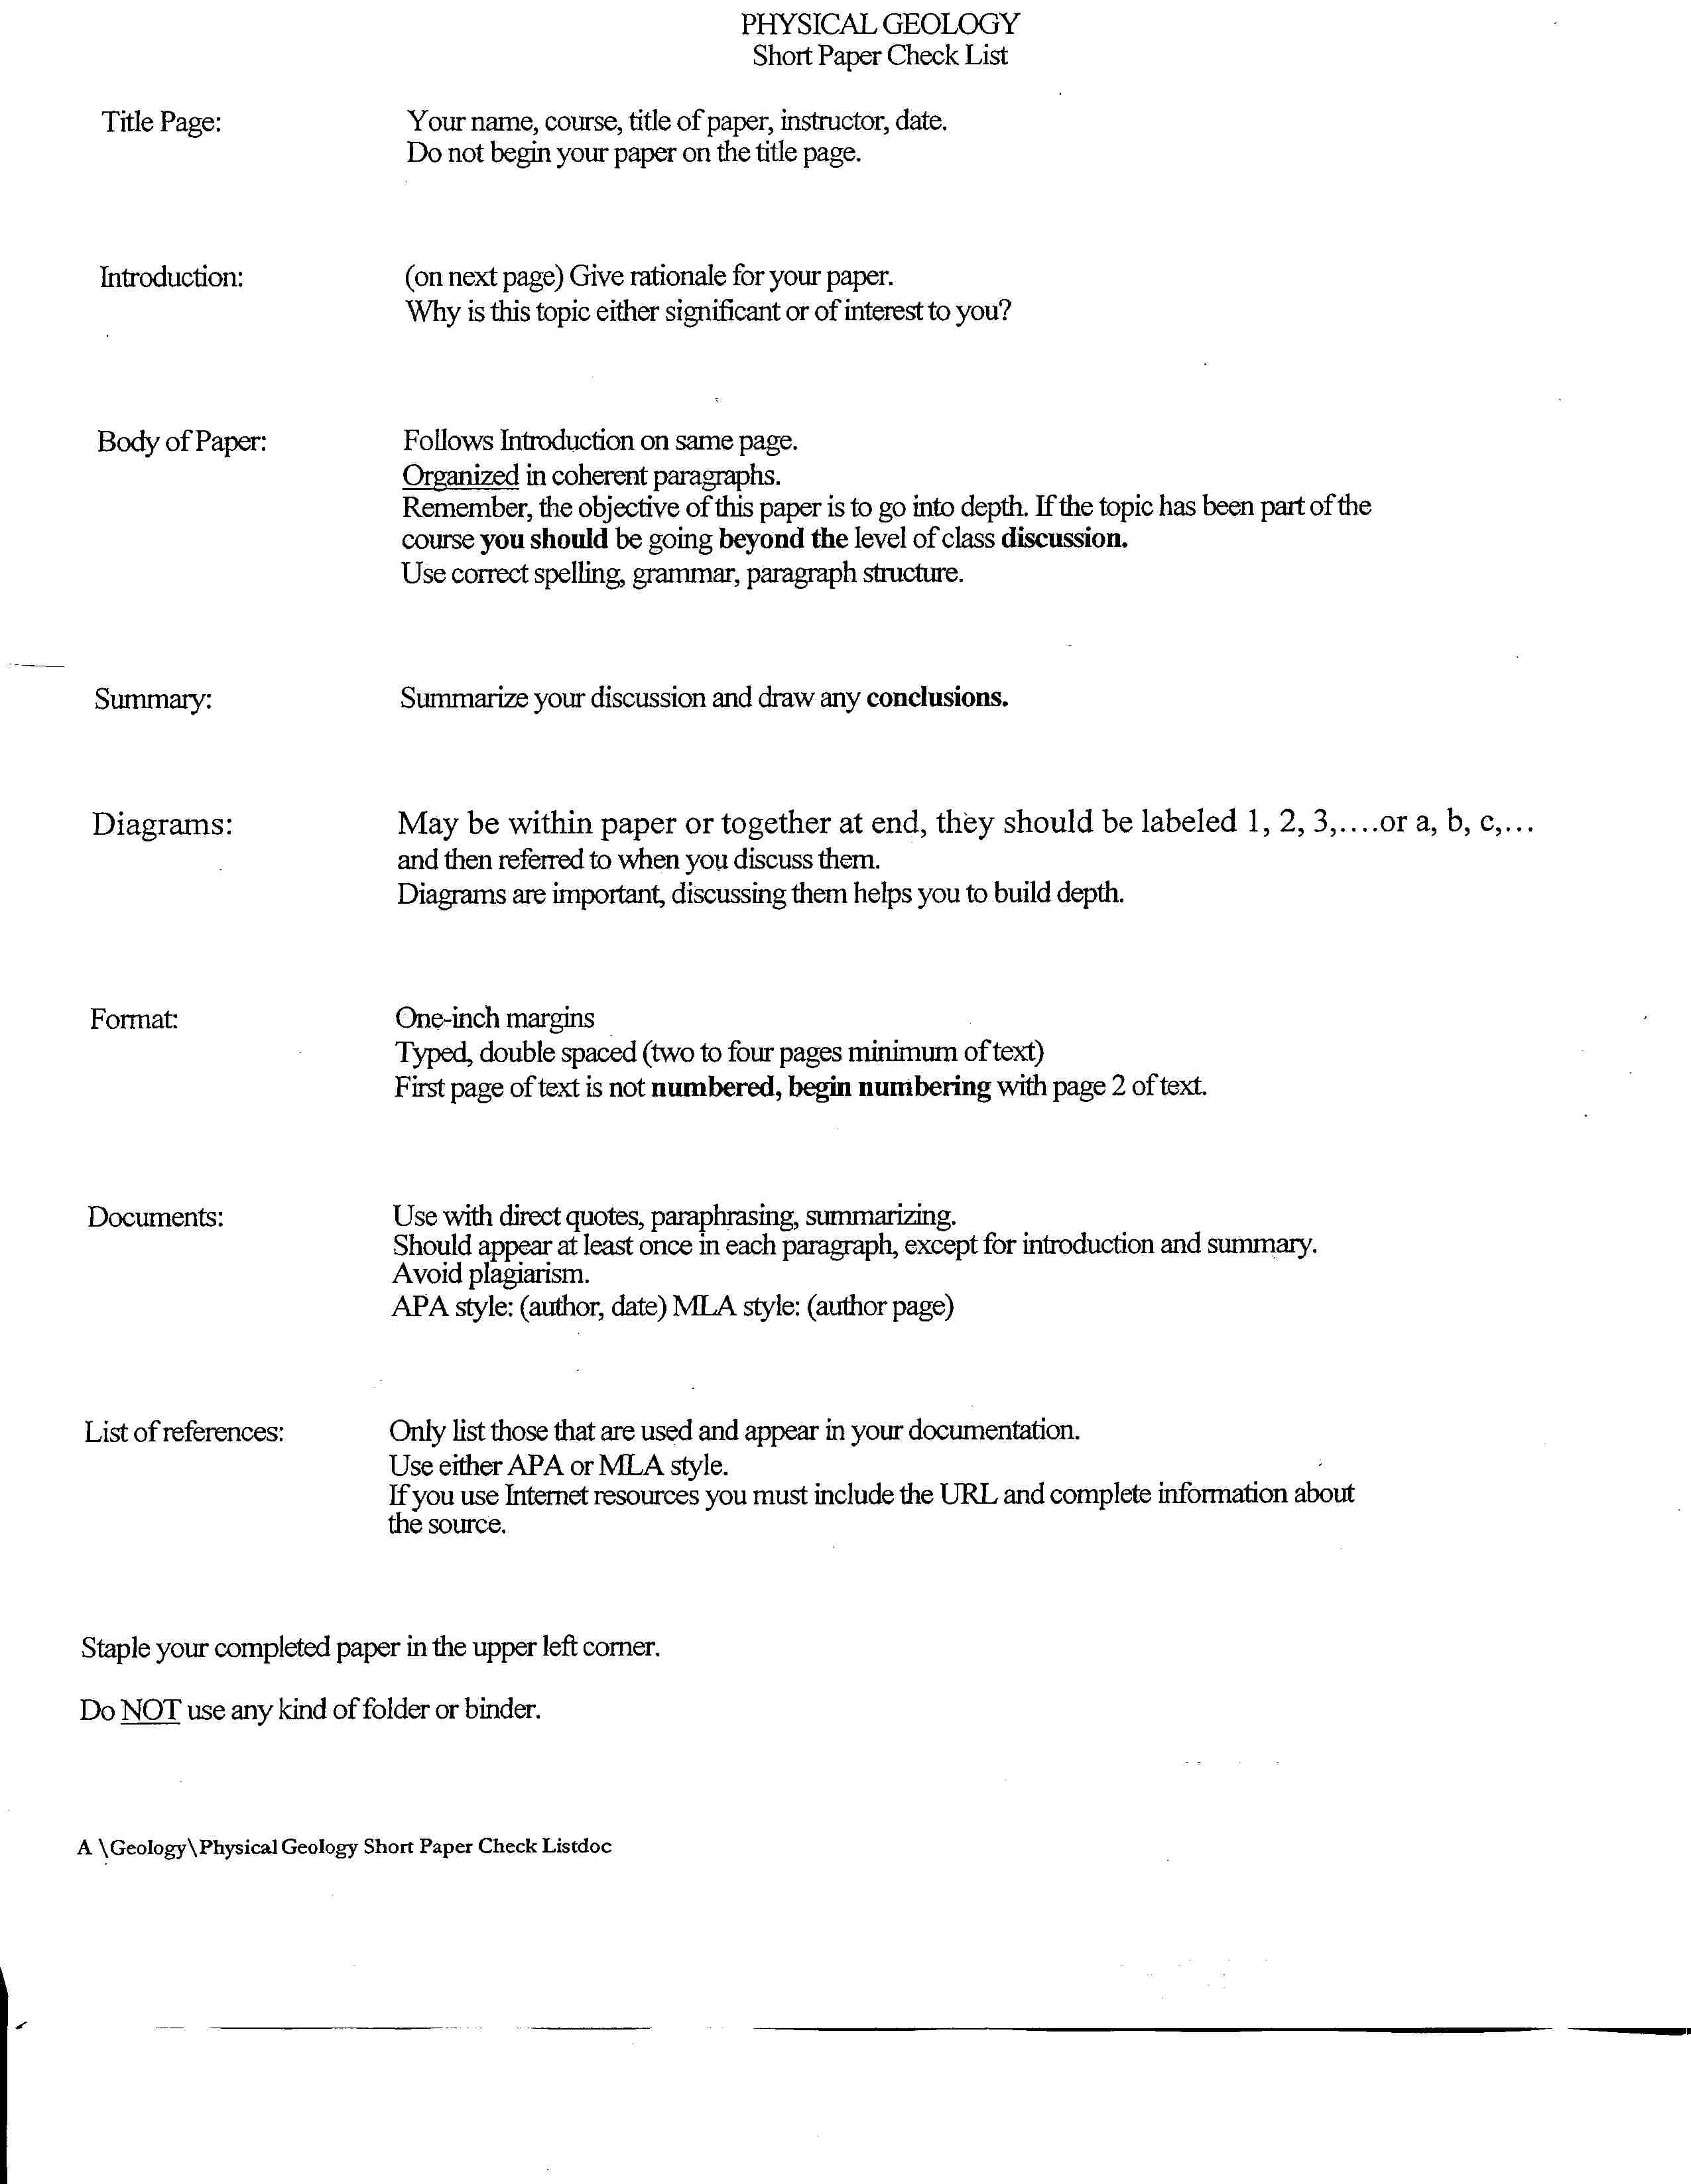 003 Research Paper Short Checklist Interesting Topics For Rare College Students In The Philippines History Technology Full